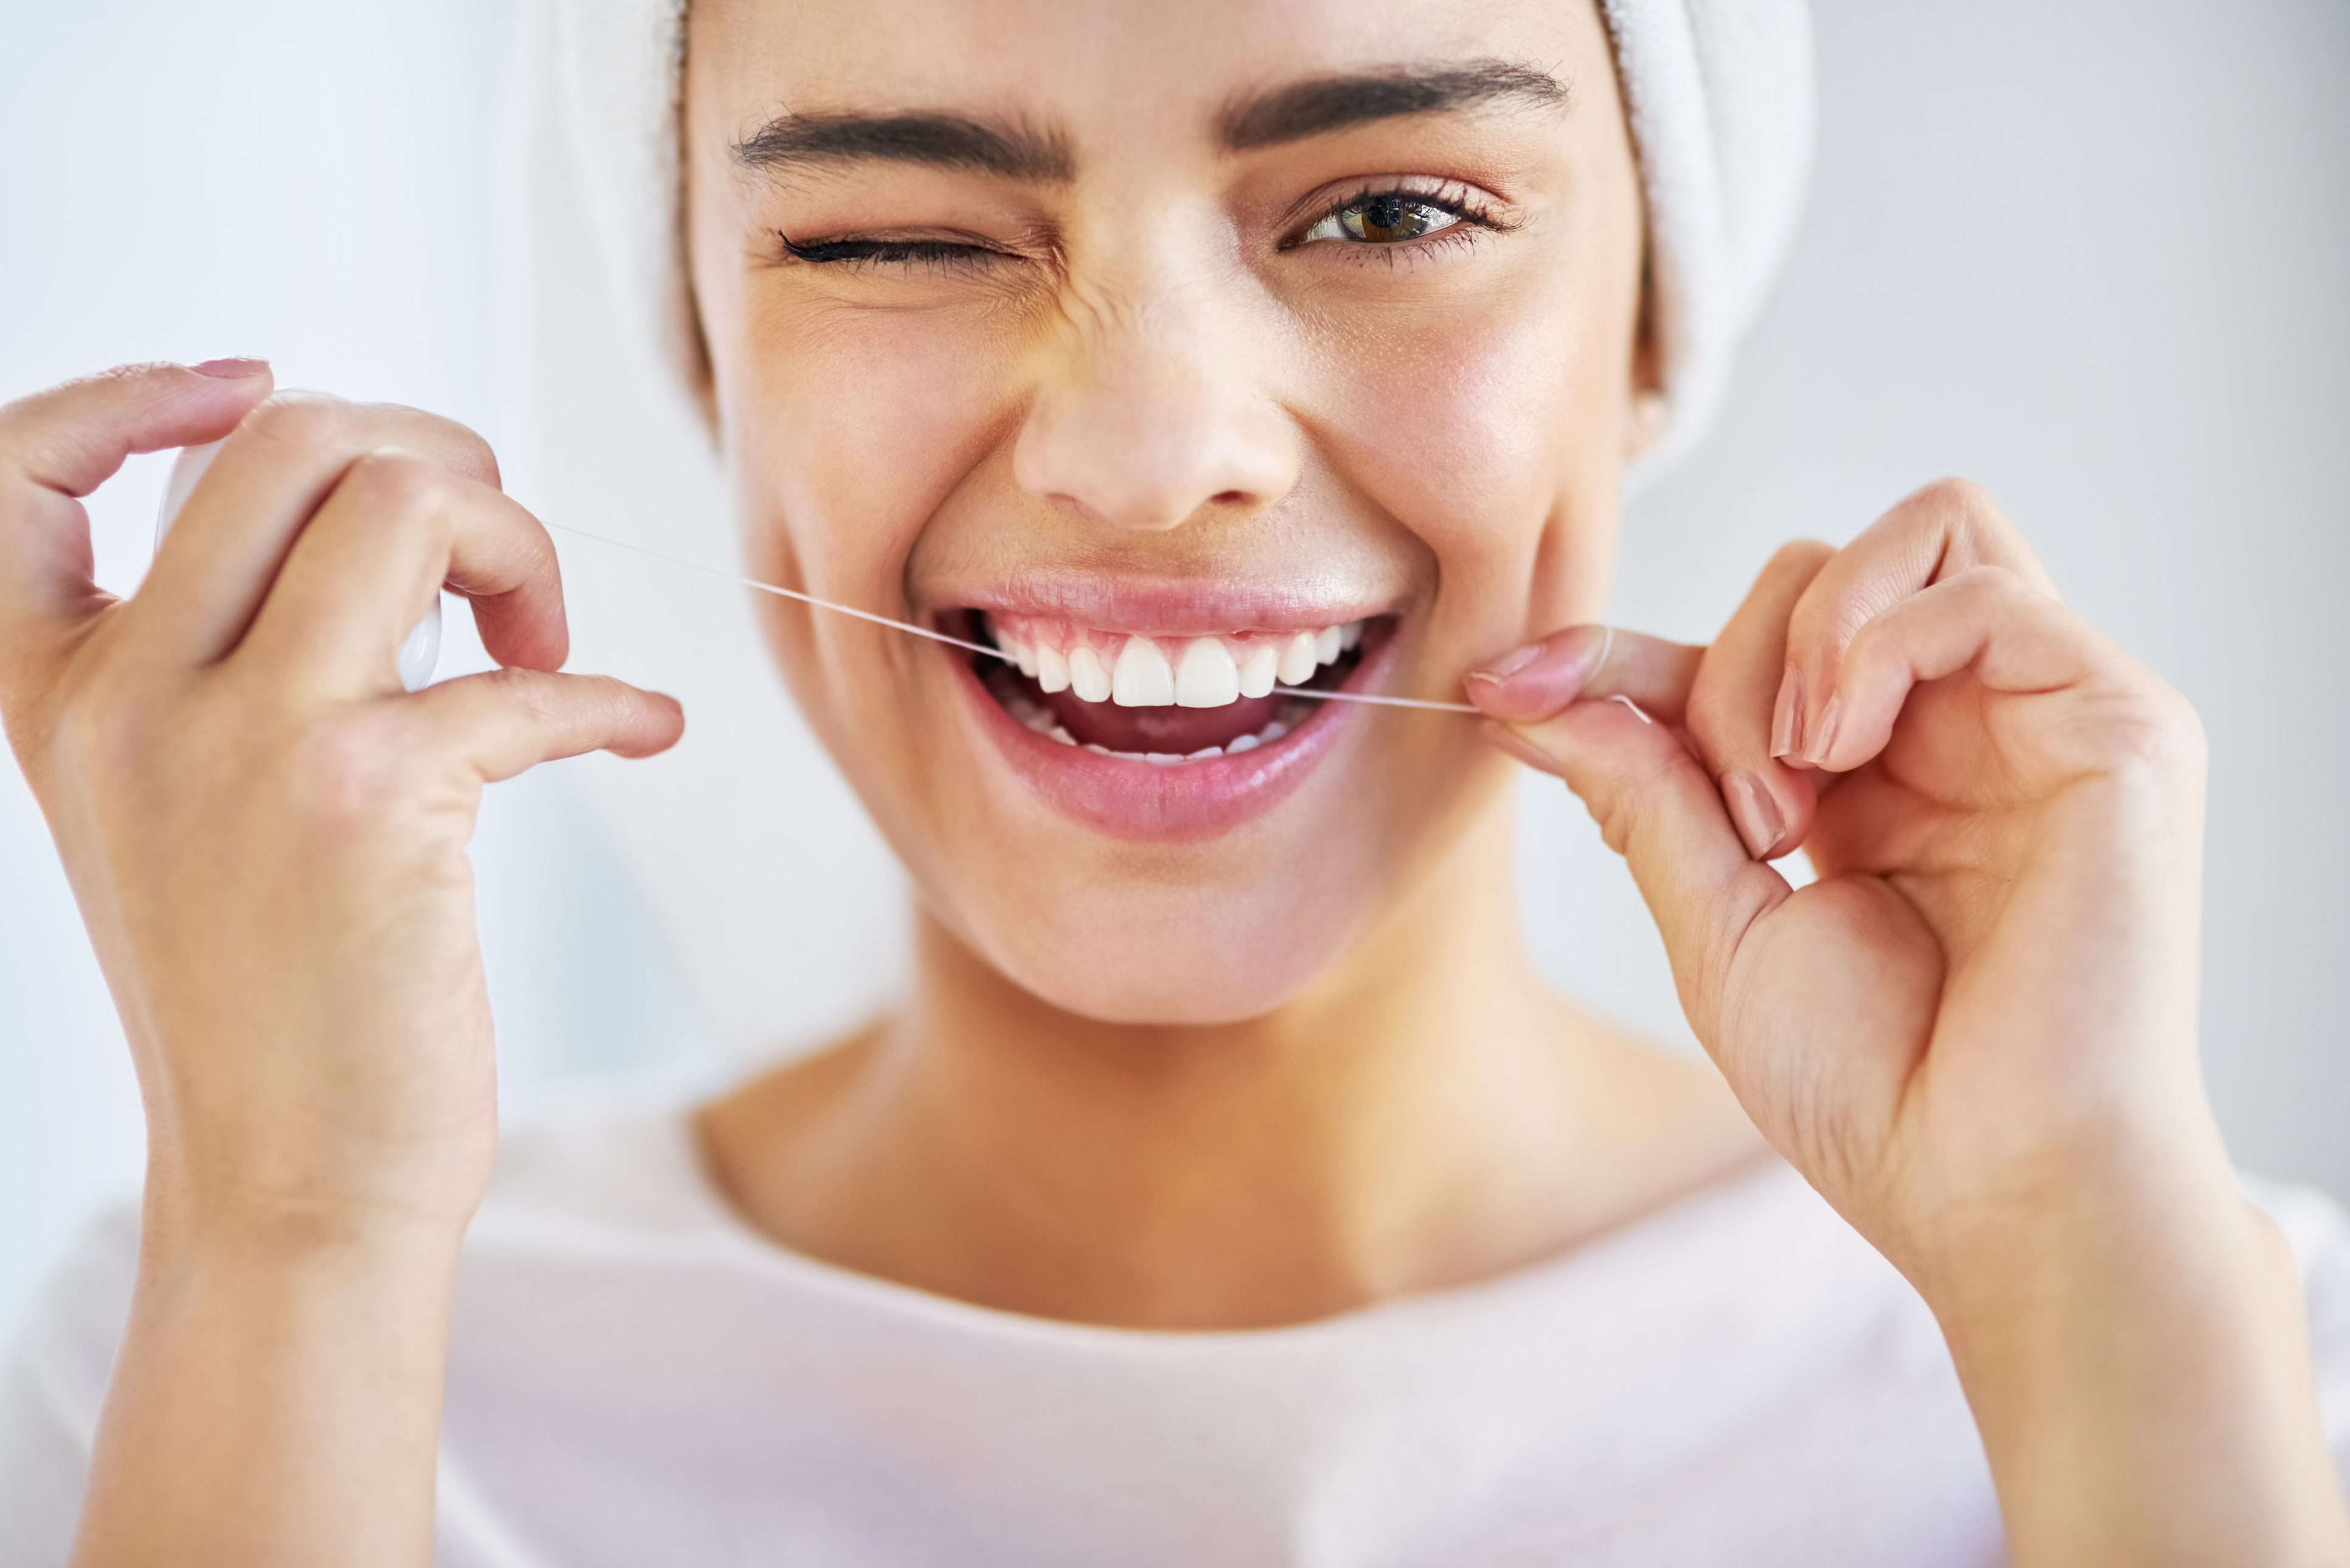 World Smile Day | 10 Oral Health Tips To Keep Your Smile Bright